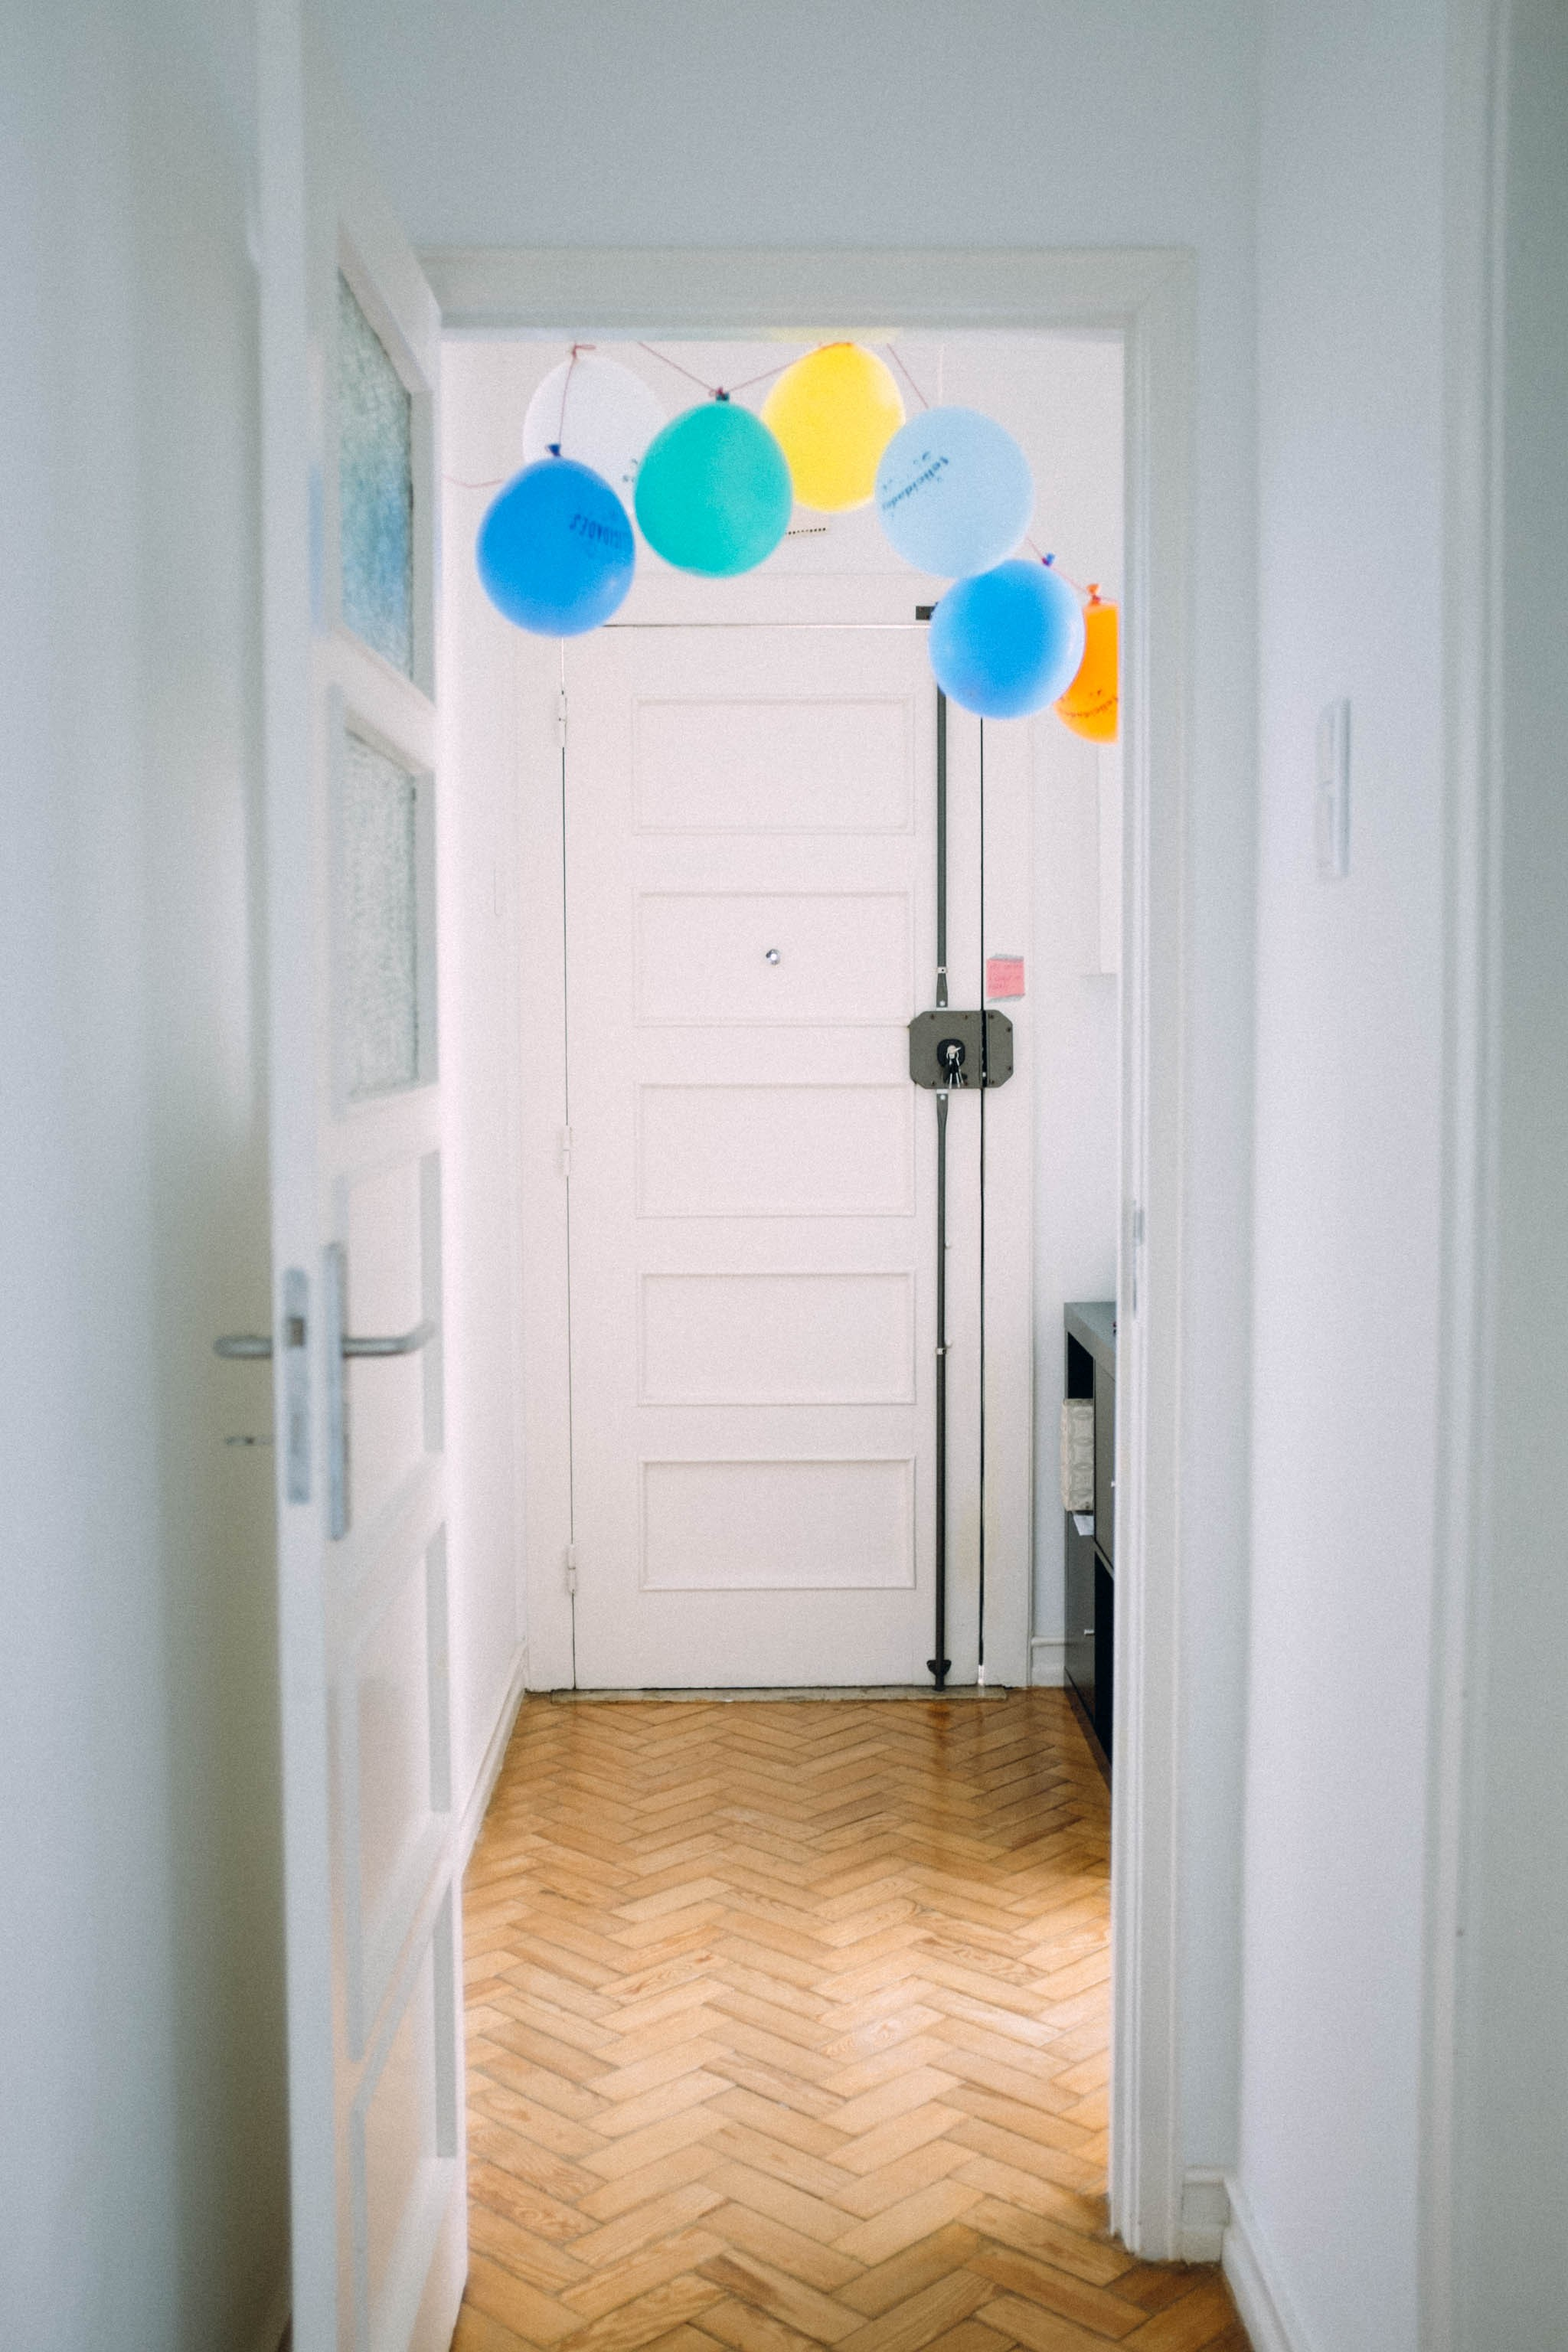 welcome balloons!